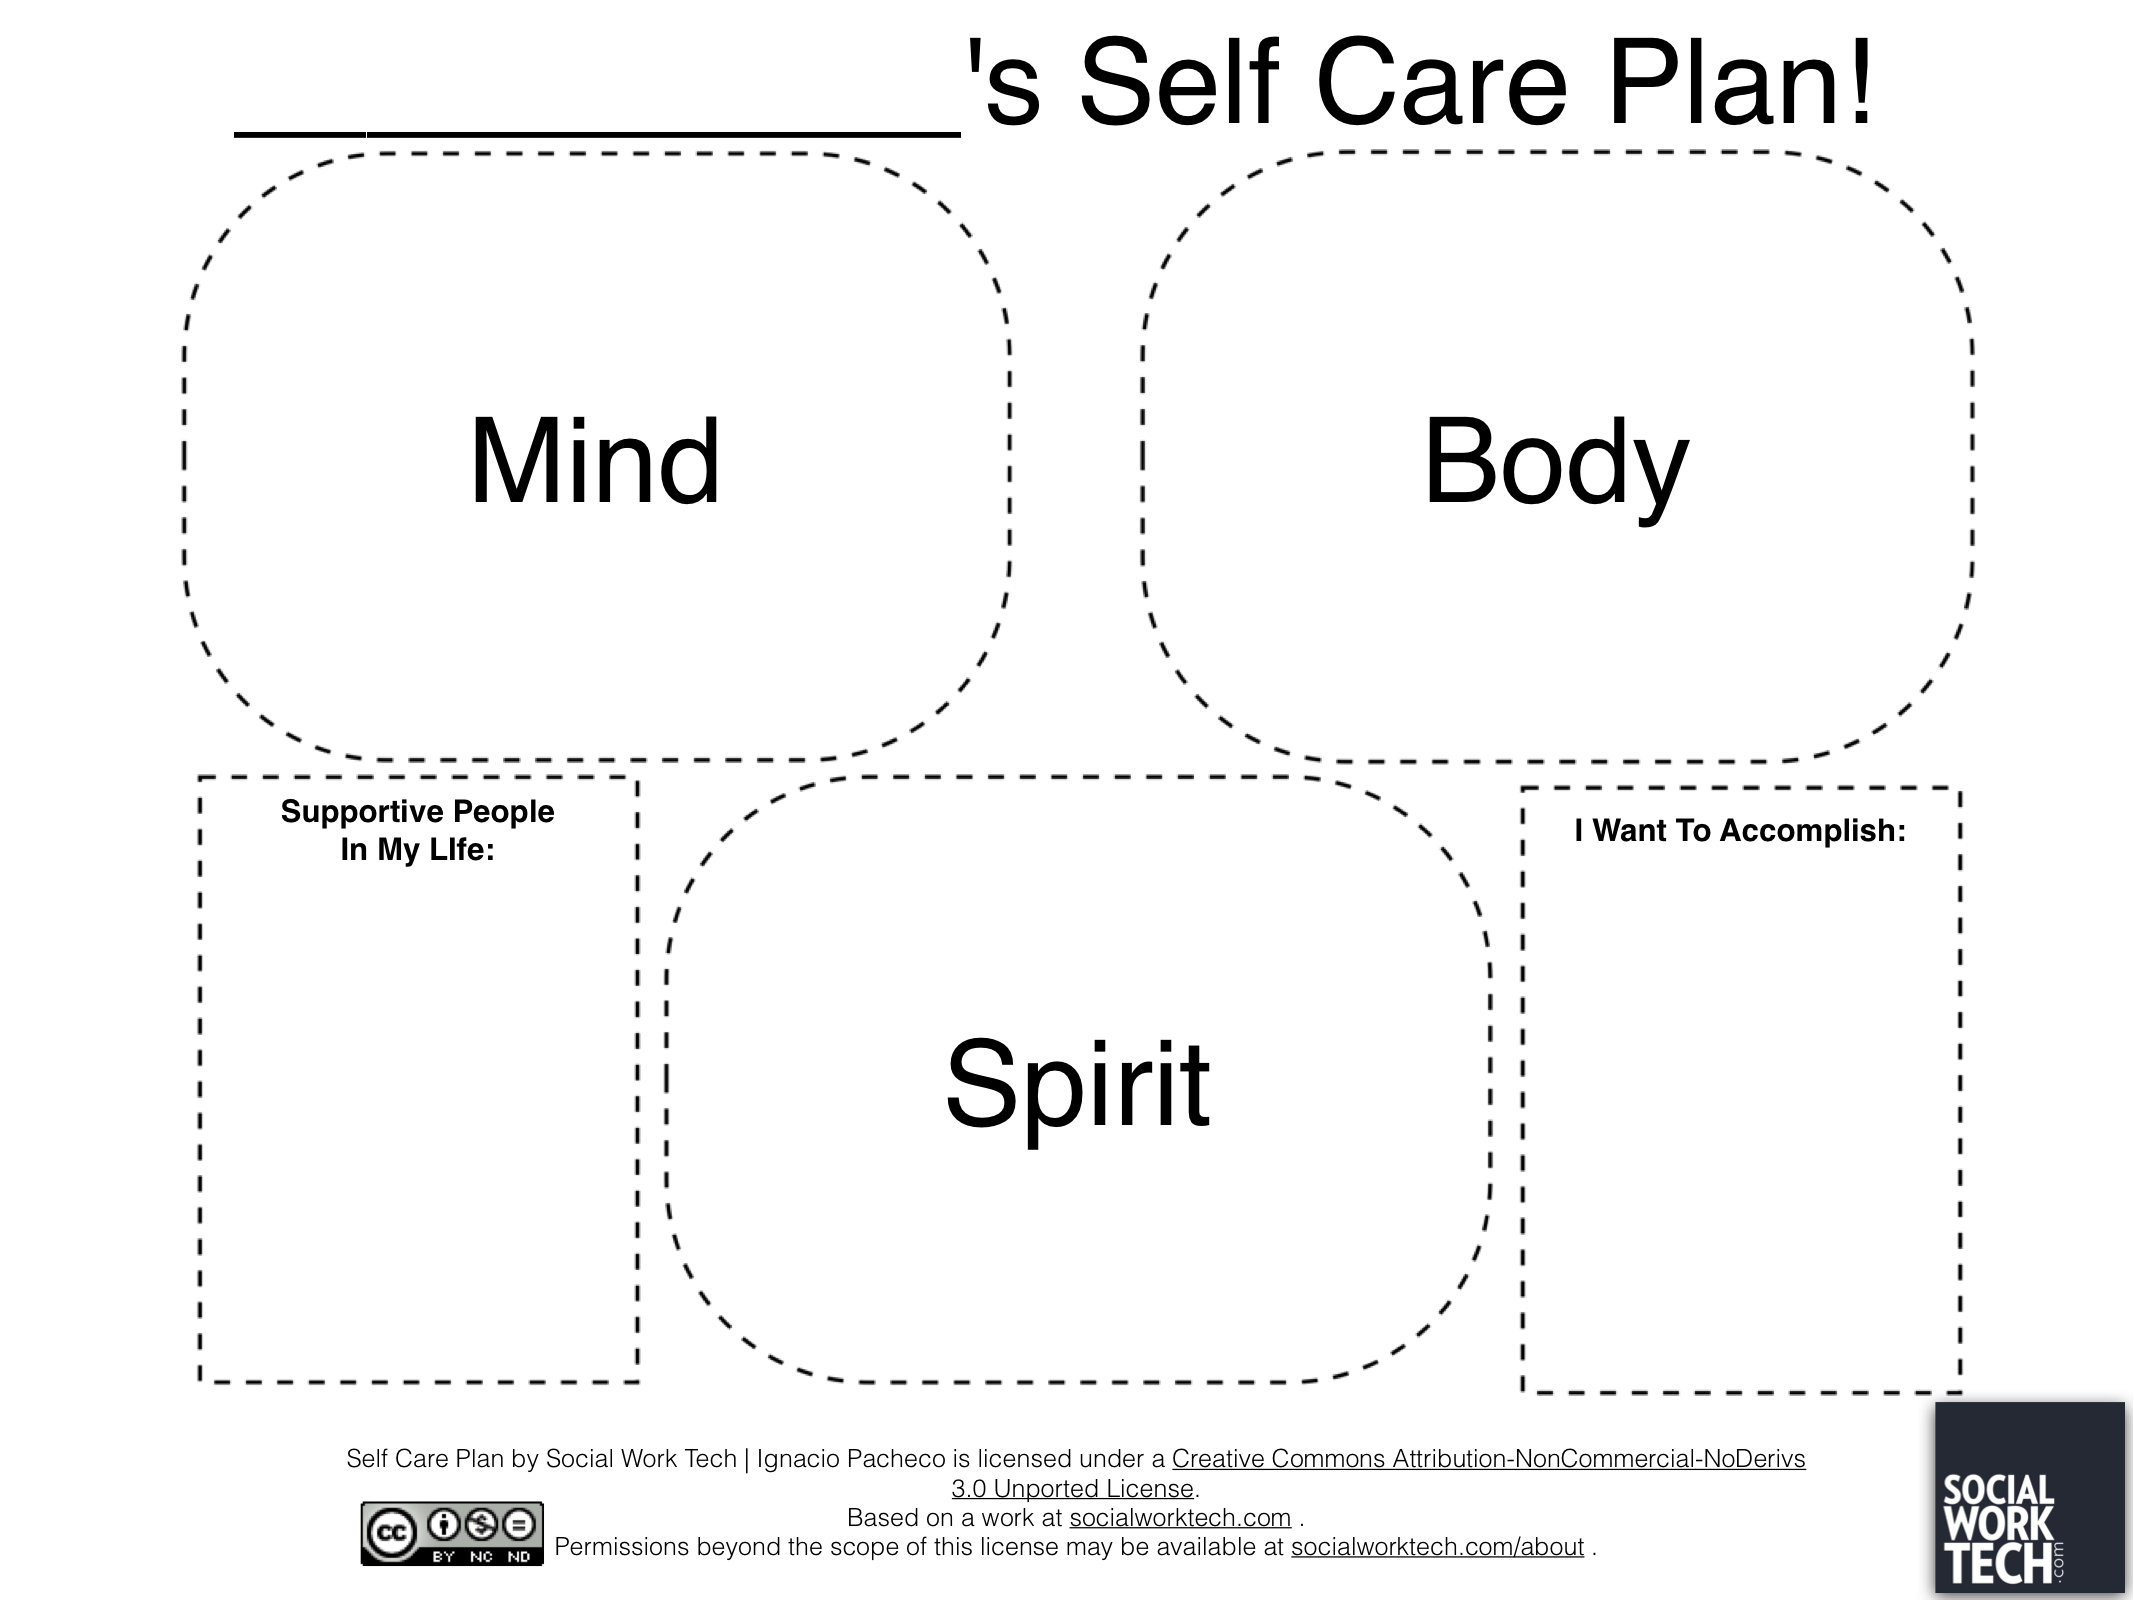 Worksheets Self Care Worksheets self care plan worksheet templates and worksheets